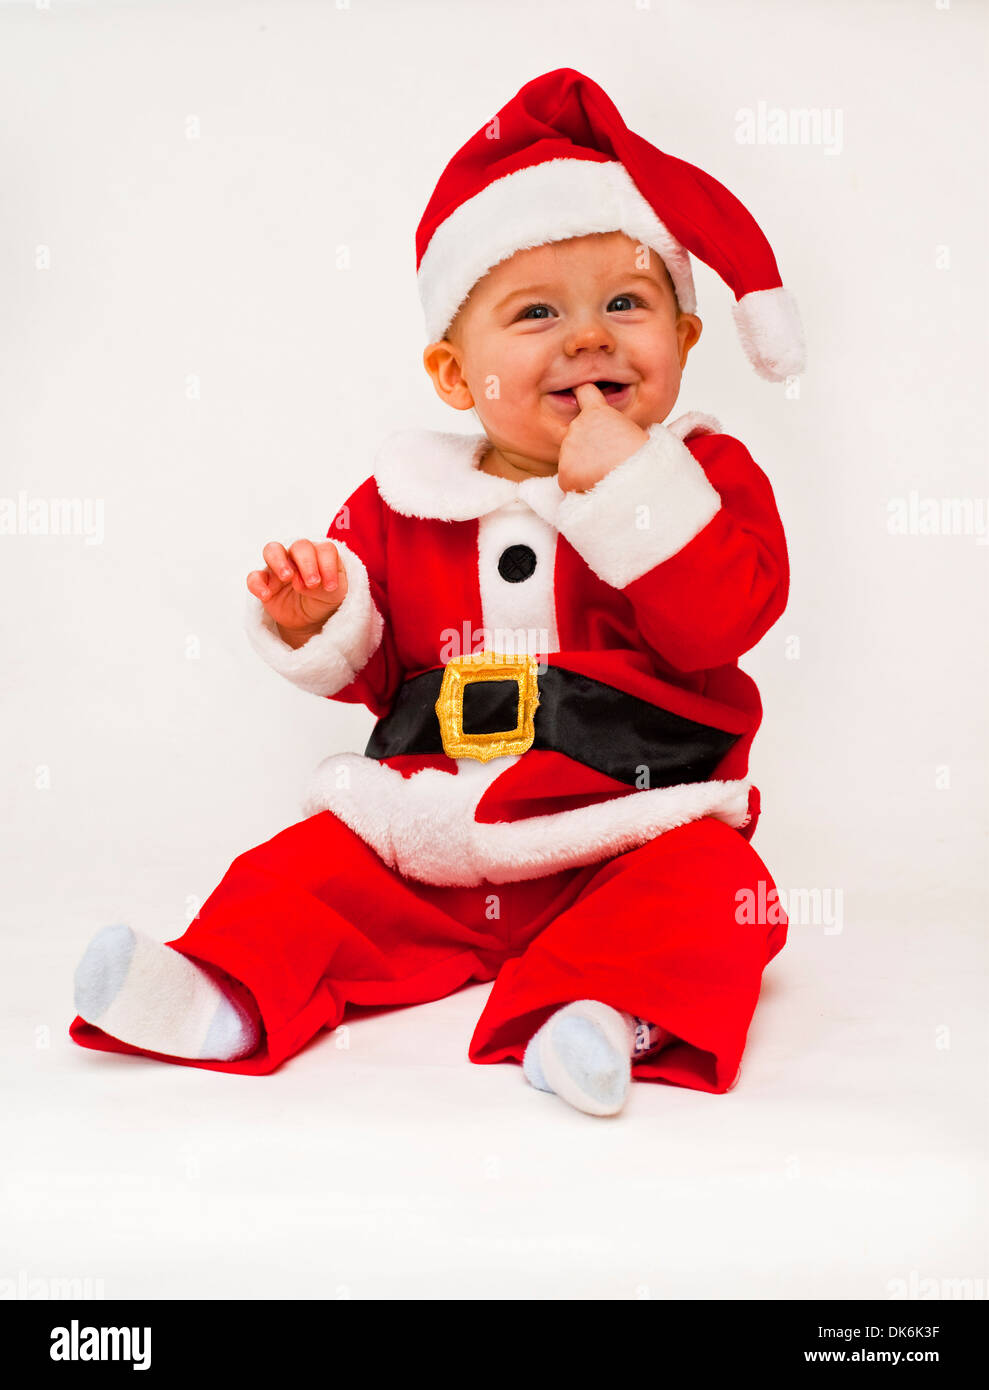 fd920715cb90 Baby Boy In Santa Outfit Ready For Christmas Sc 1 St Alamy. image number 14  of baby santa costumes ...